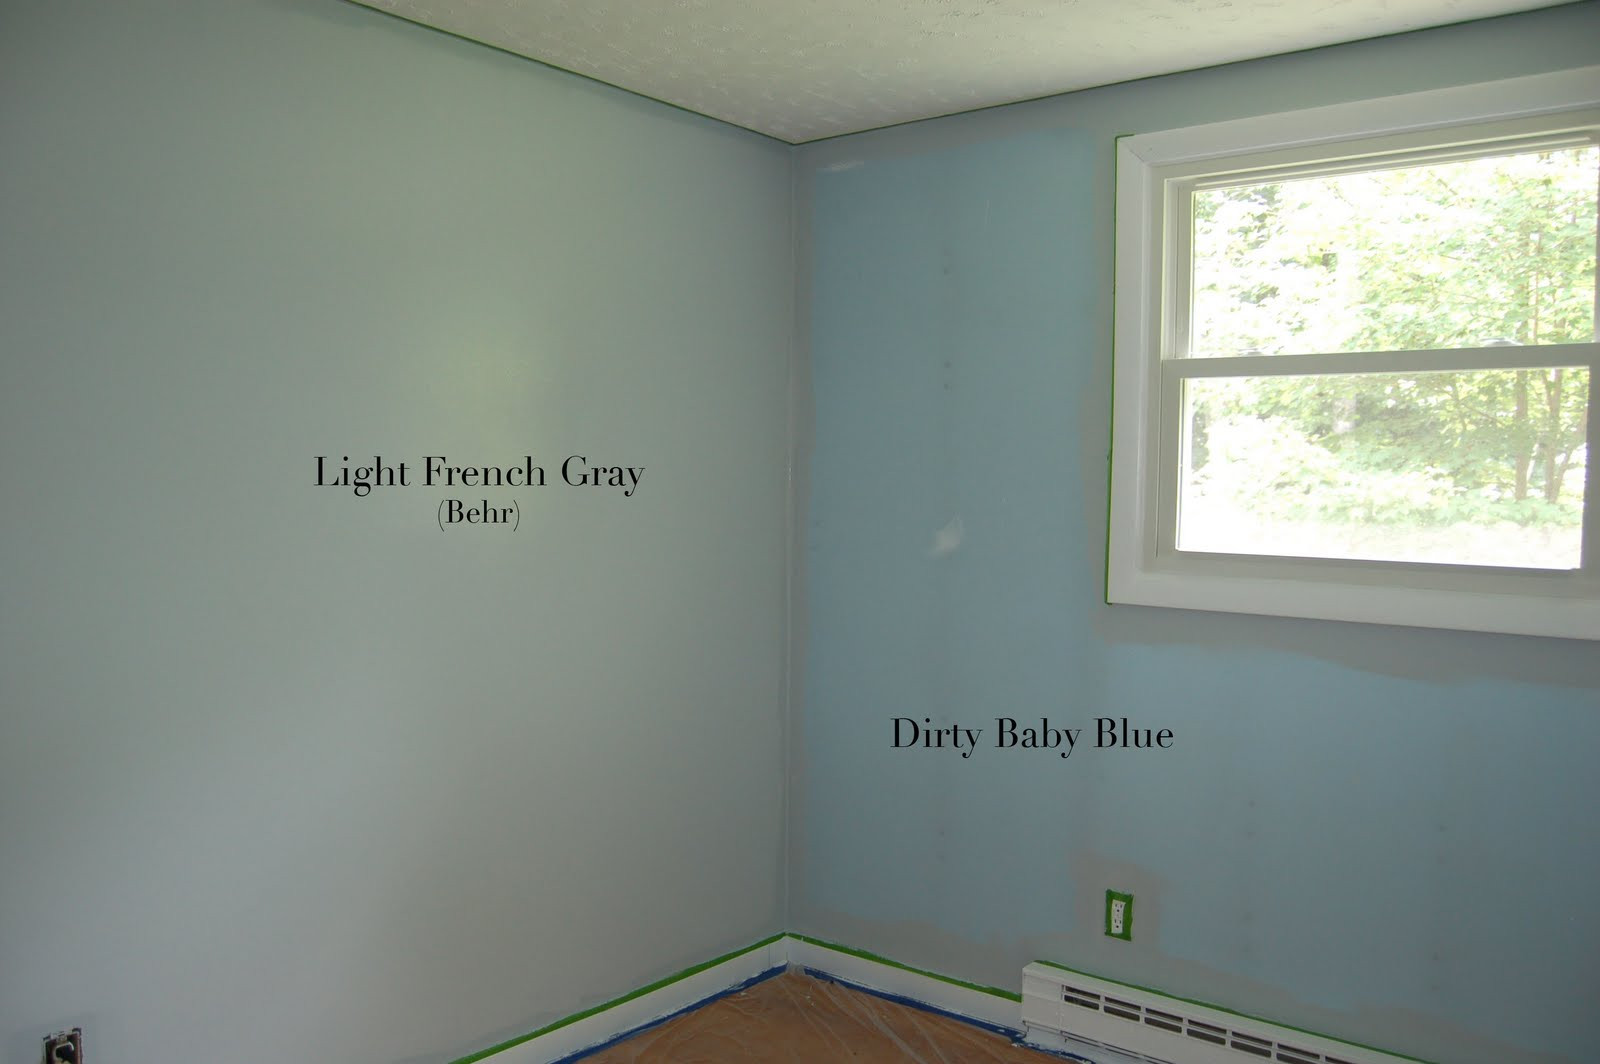 Best ideas about Miller Paint Colors . Save or Pin Crafty Teacher Lady What Dreams May e Now.